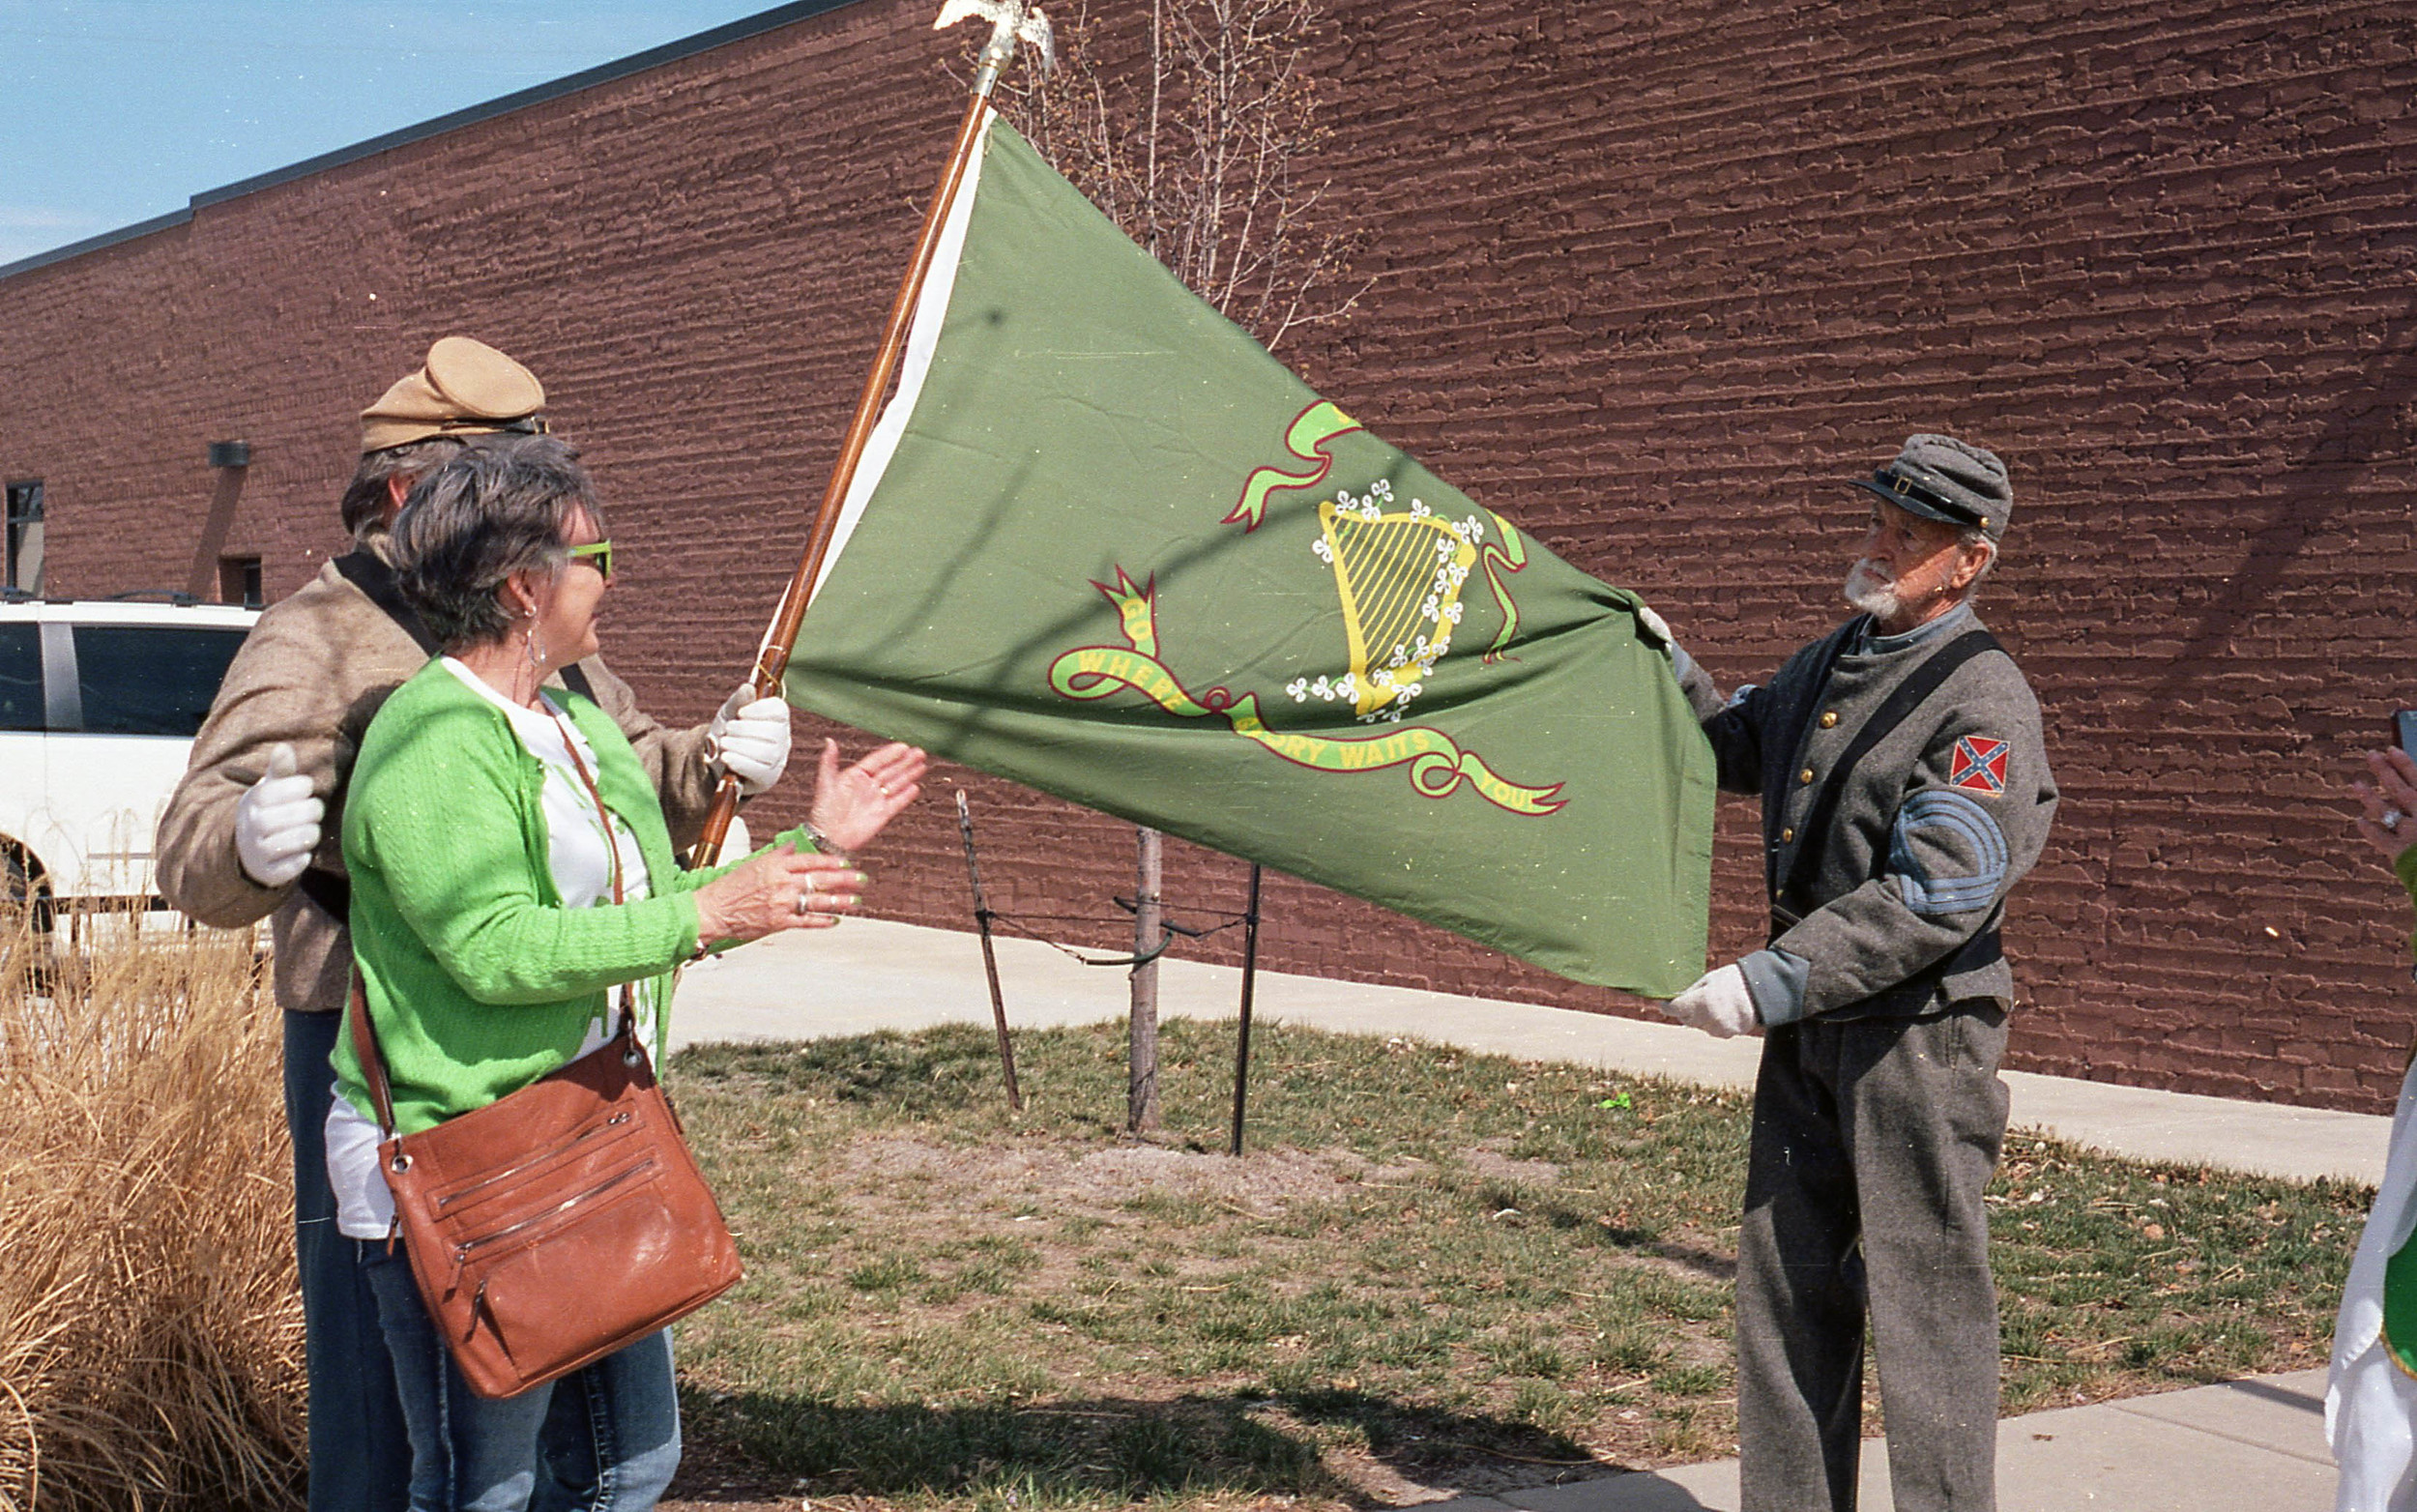 I found this so odd. Confederate reenactors celebrating St. Patrick's Day. Wasn't Kansas a free state? I didn't see any union soldiers at all.